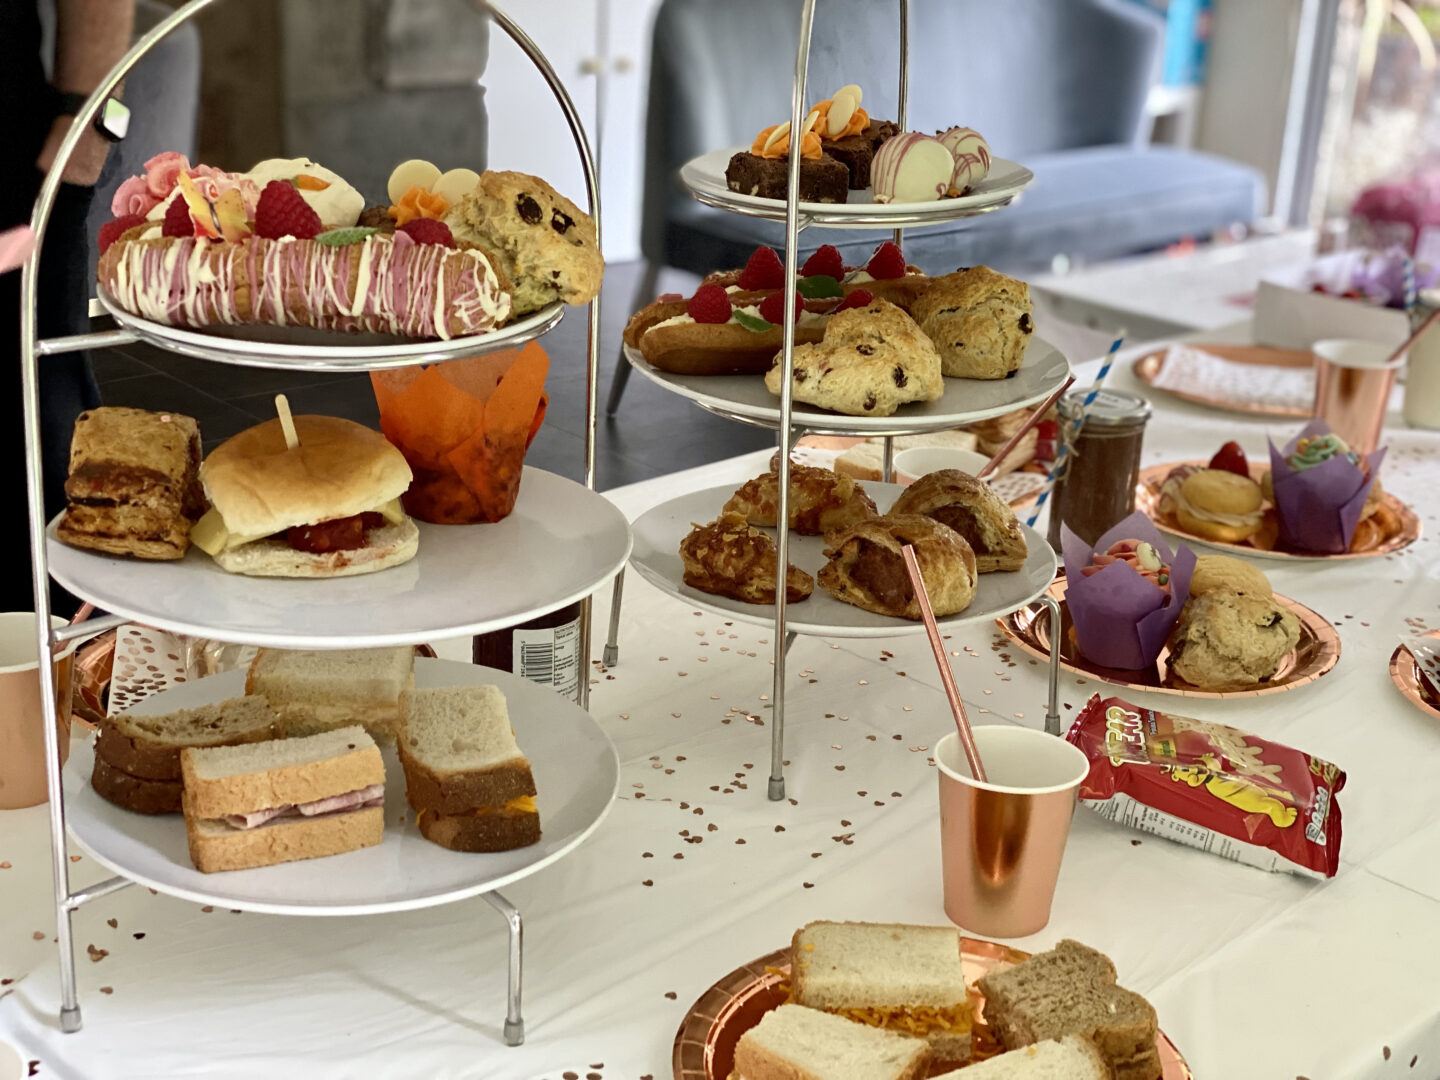 An afternoon tea set out on a dining table on cake stands